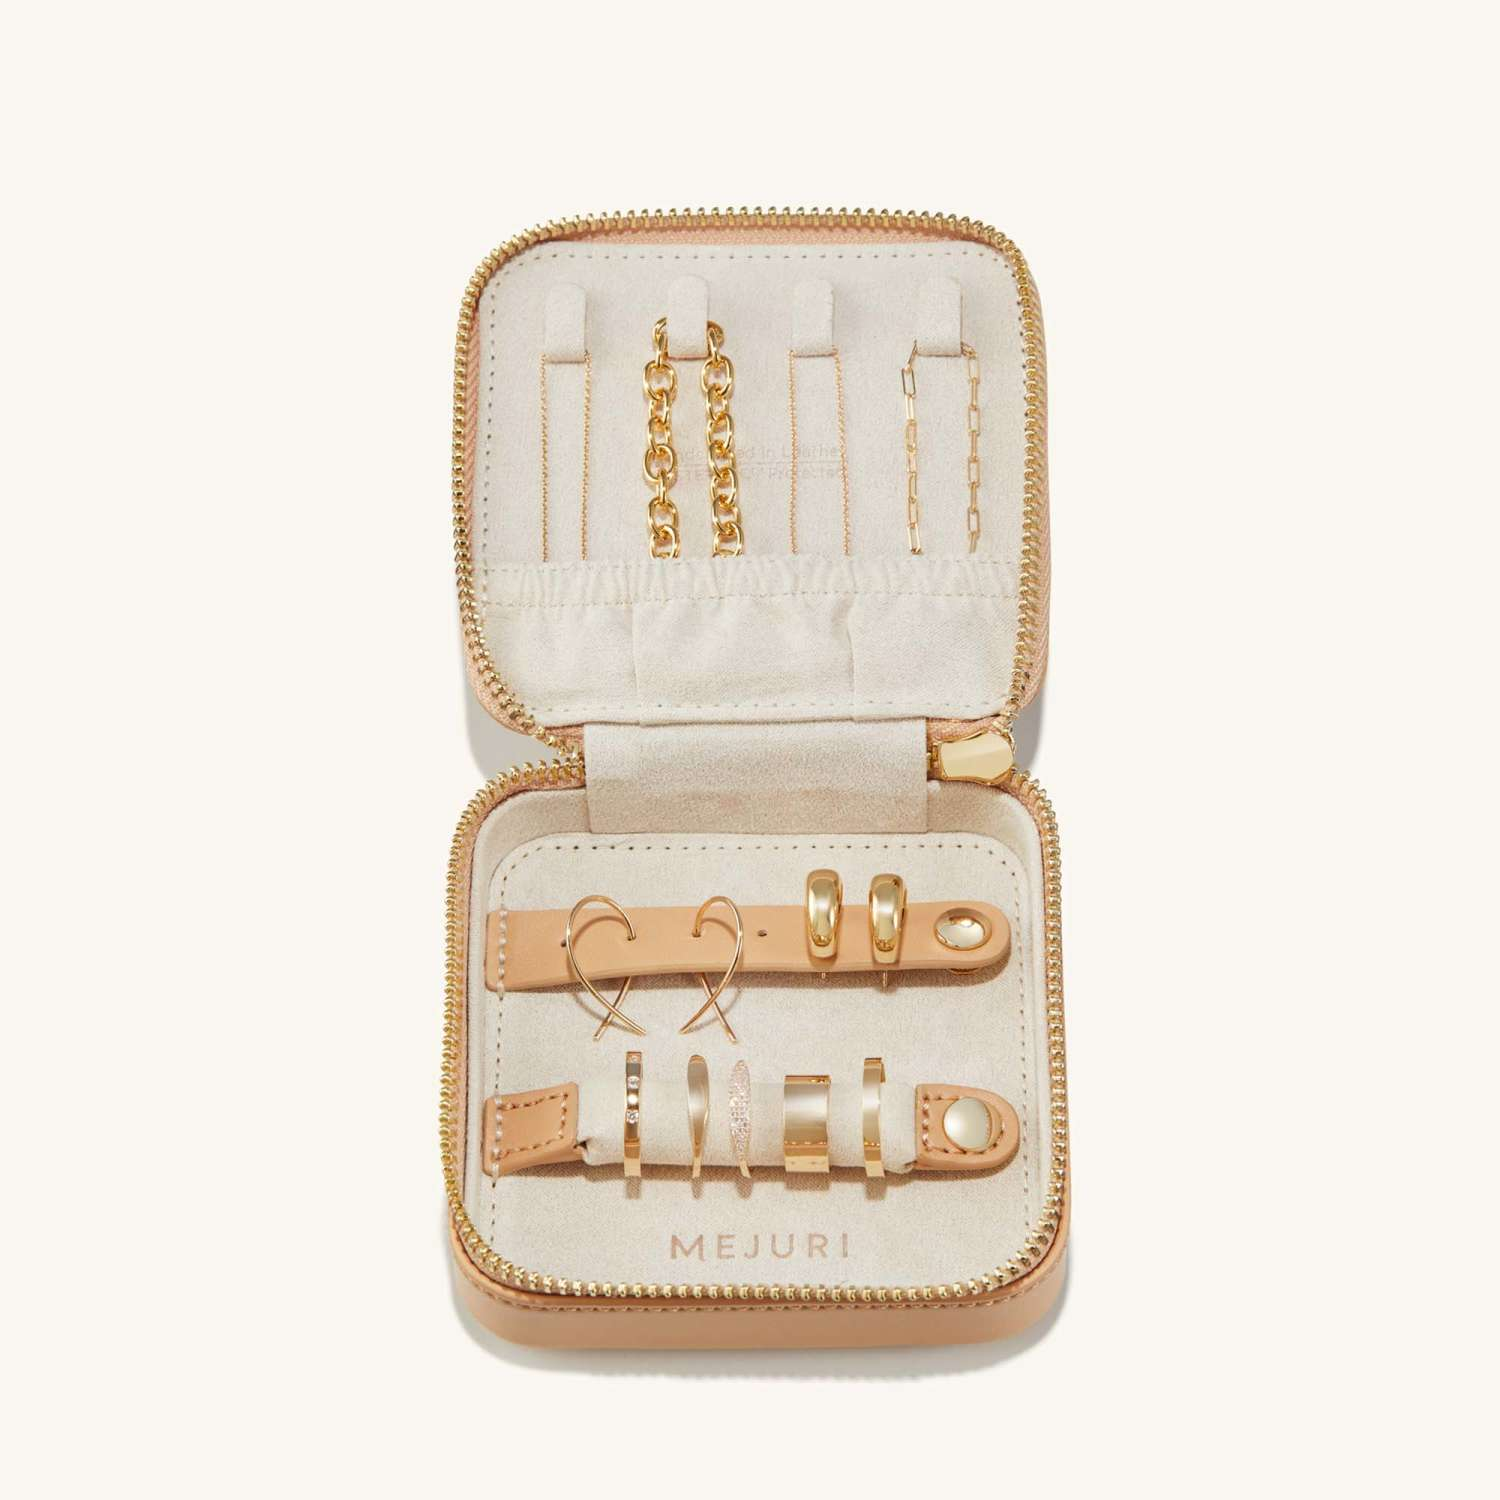 Monogrammed Travel Jewelry Case Mejuir Best Bridal Shower Gifts